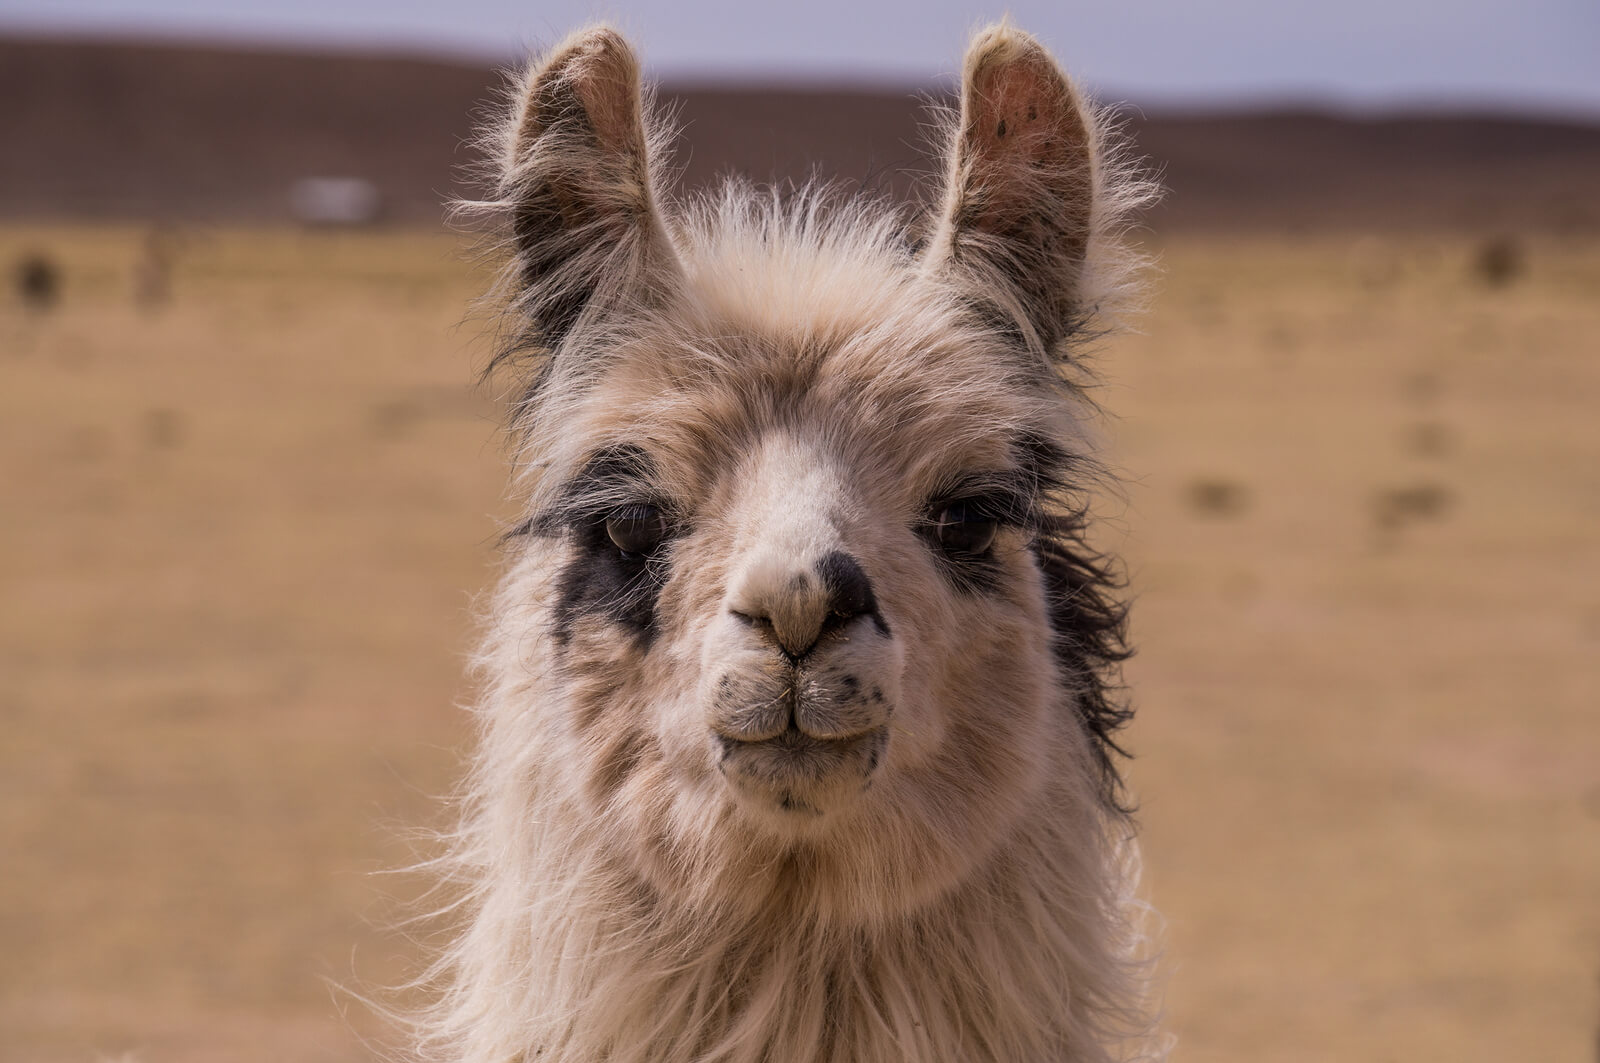 An awesomely cute alpaca